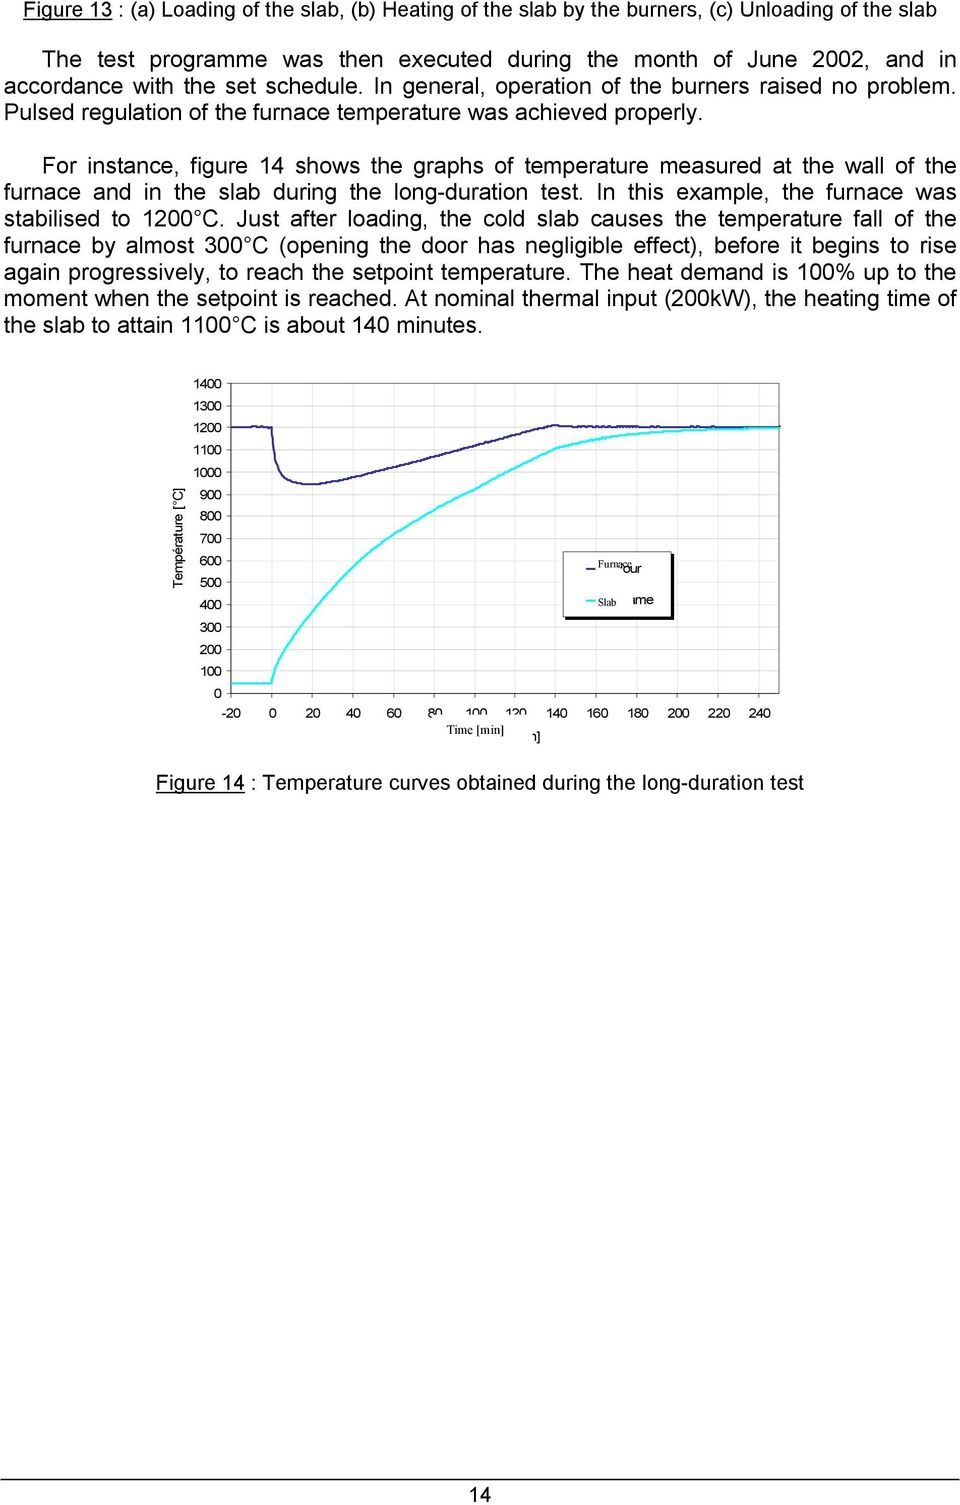 For instance, figure 14 shows the graphs of temperature measured at the wall of the furnace and in the slab during the long-duration test. In this example, the furnace was stabilised to 1200 C.